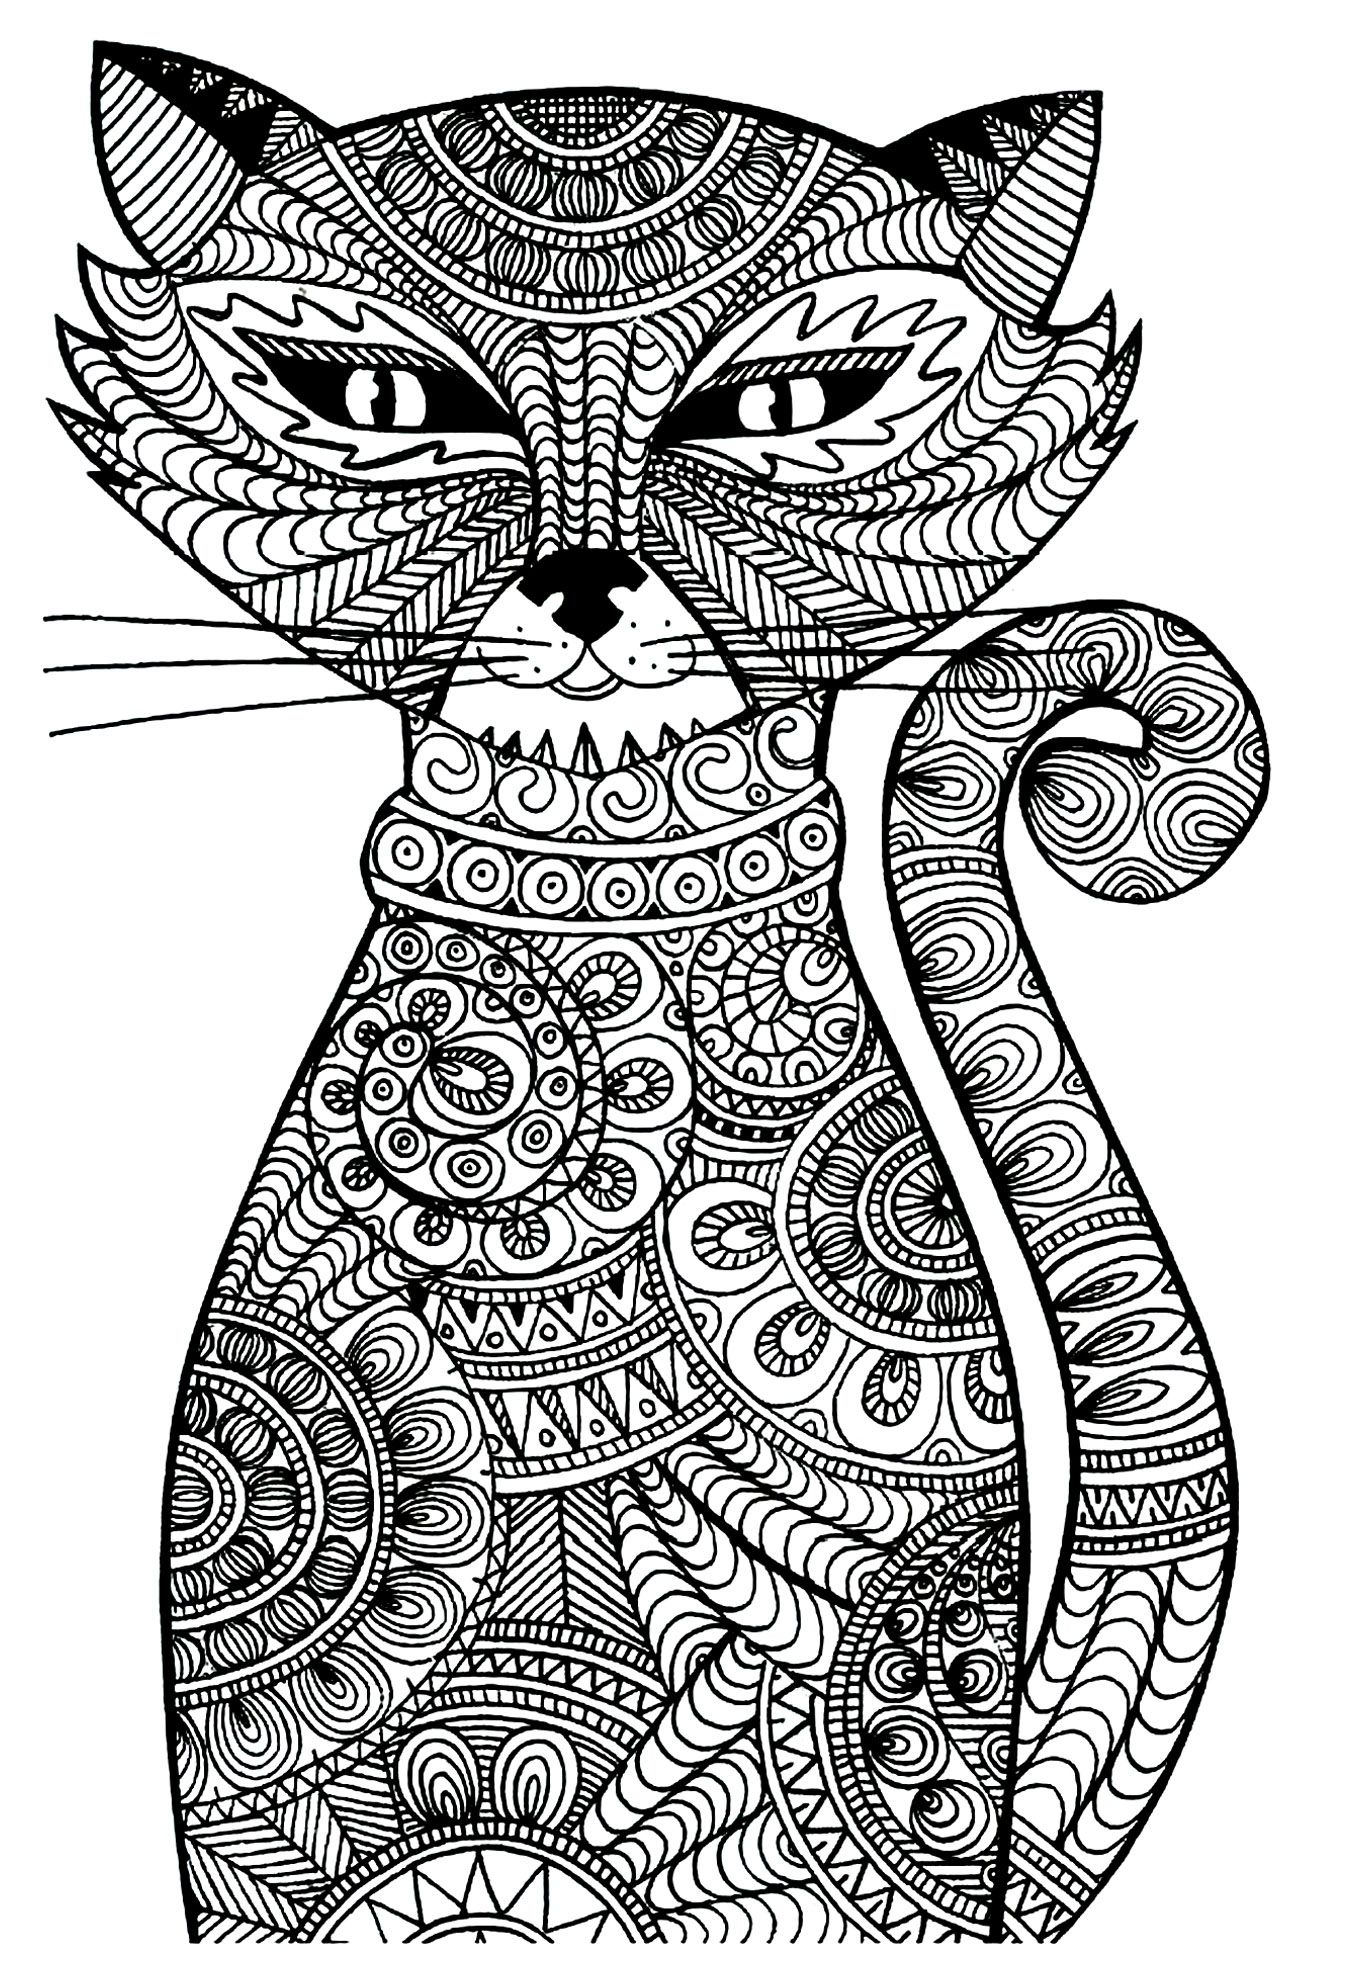 Stress relieving cats coloring - Free Coloring Page Coloring Adult Cat Cat With Zentangle Patterns